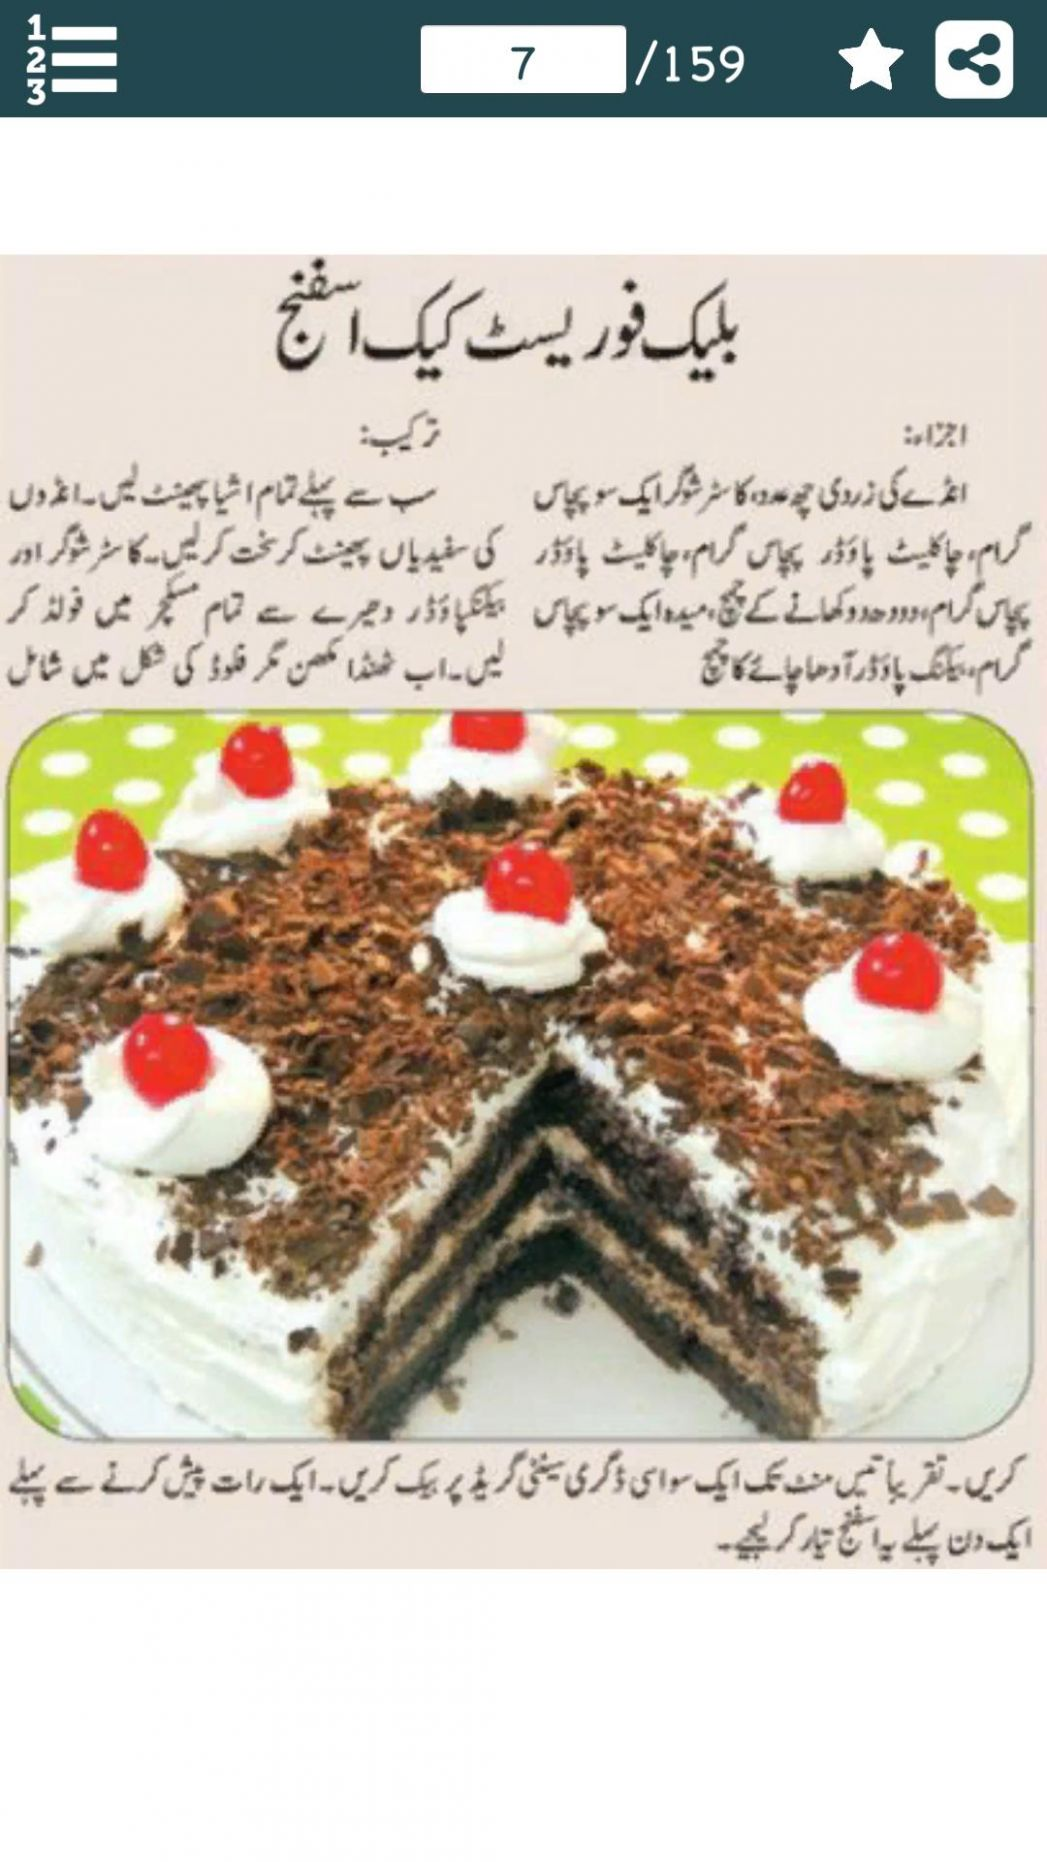 Cake Recipes in URDU for Android - APK Download - Cake Recipes Urdu Simple